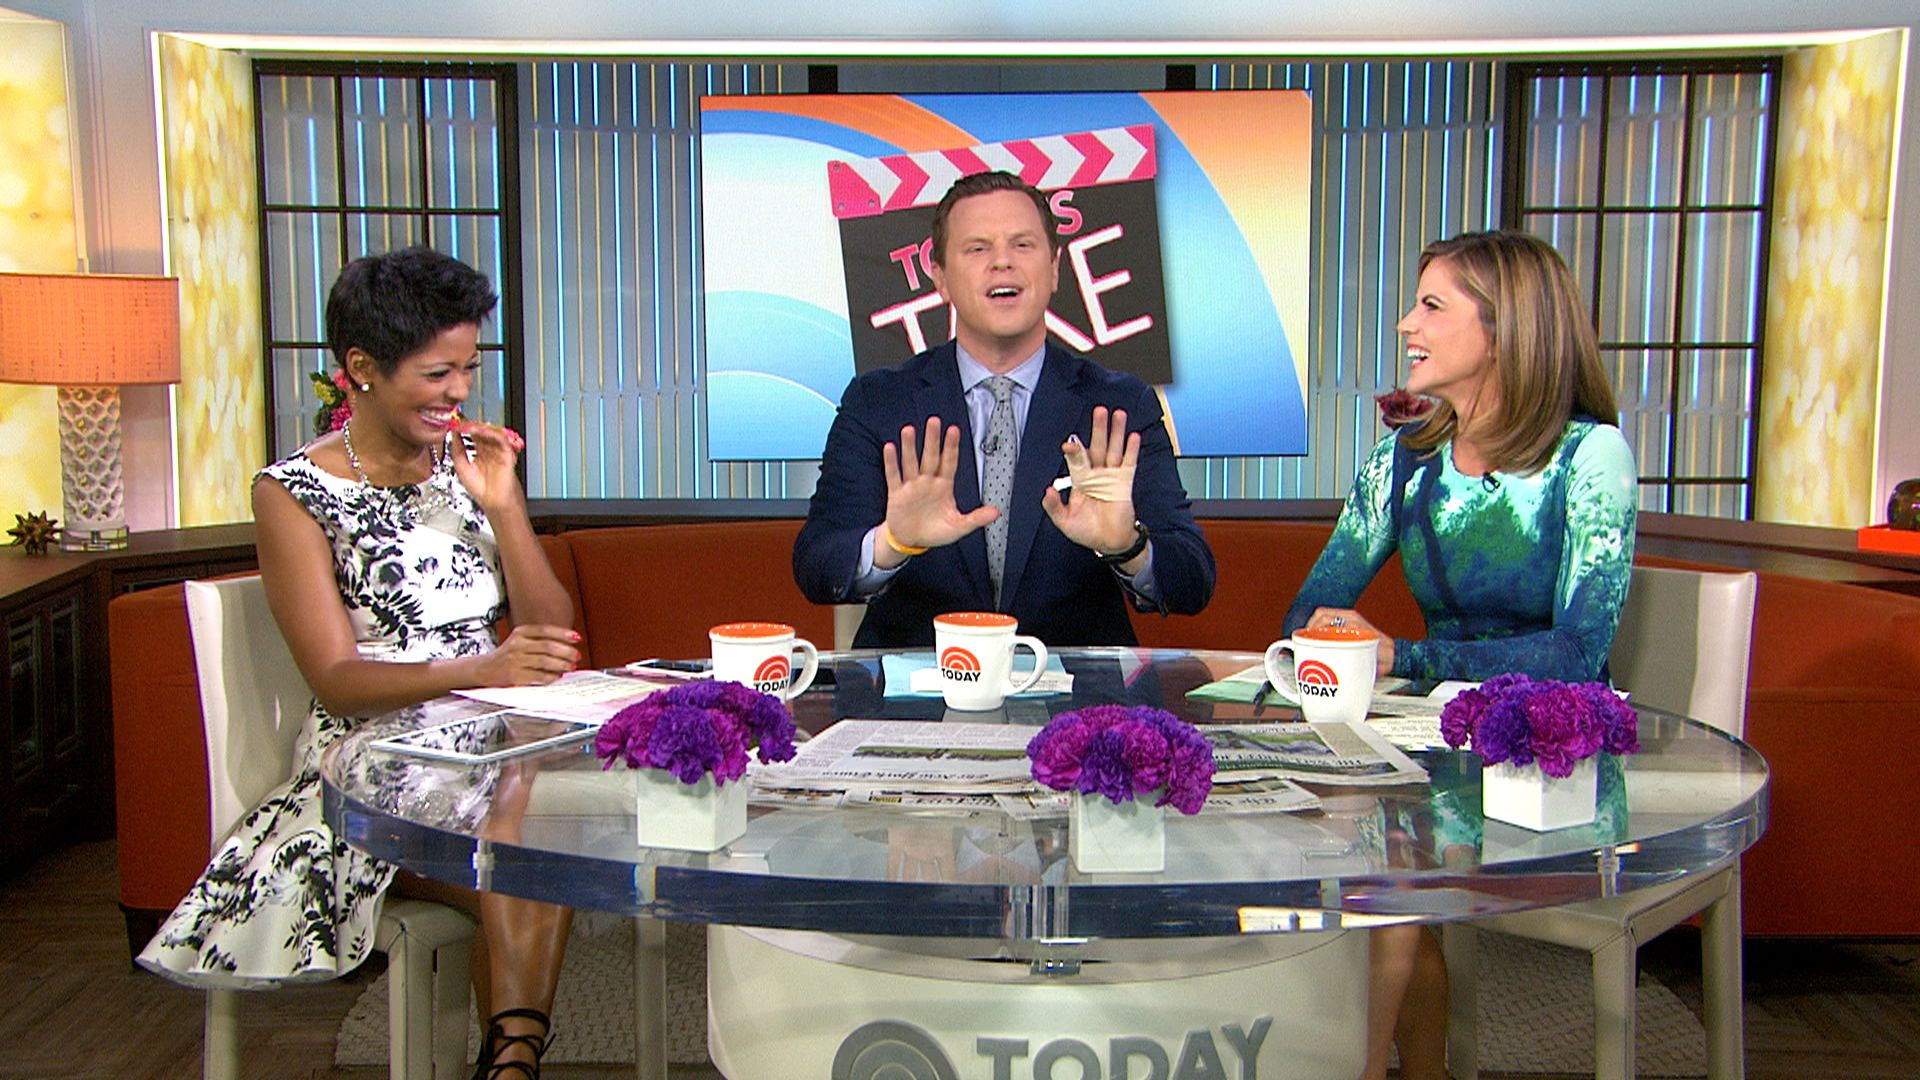 Vote to breast cancer research — a TODAY anchor will get dunked